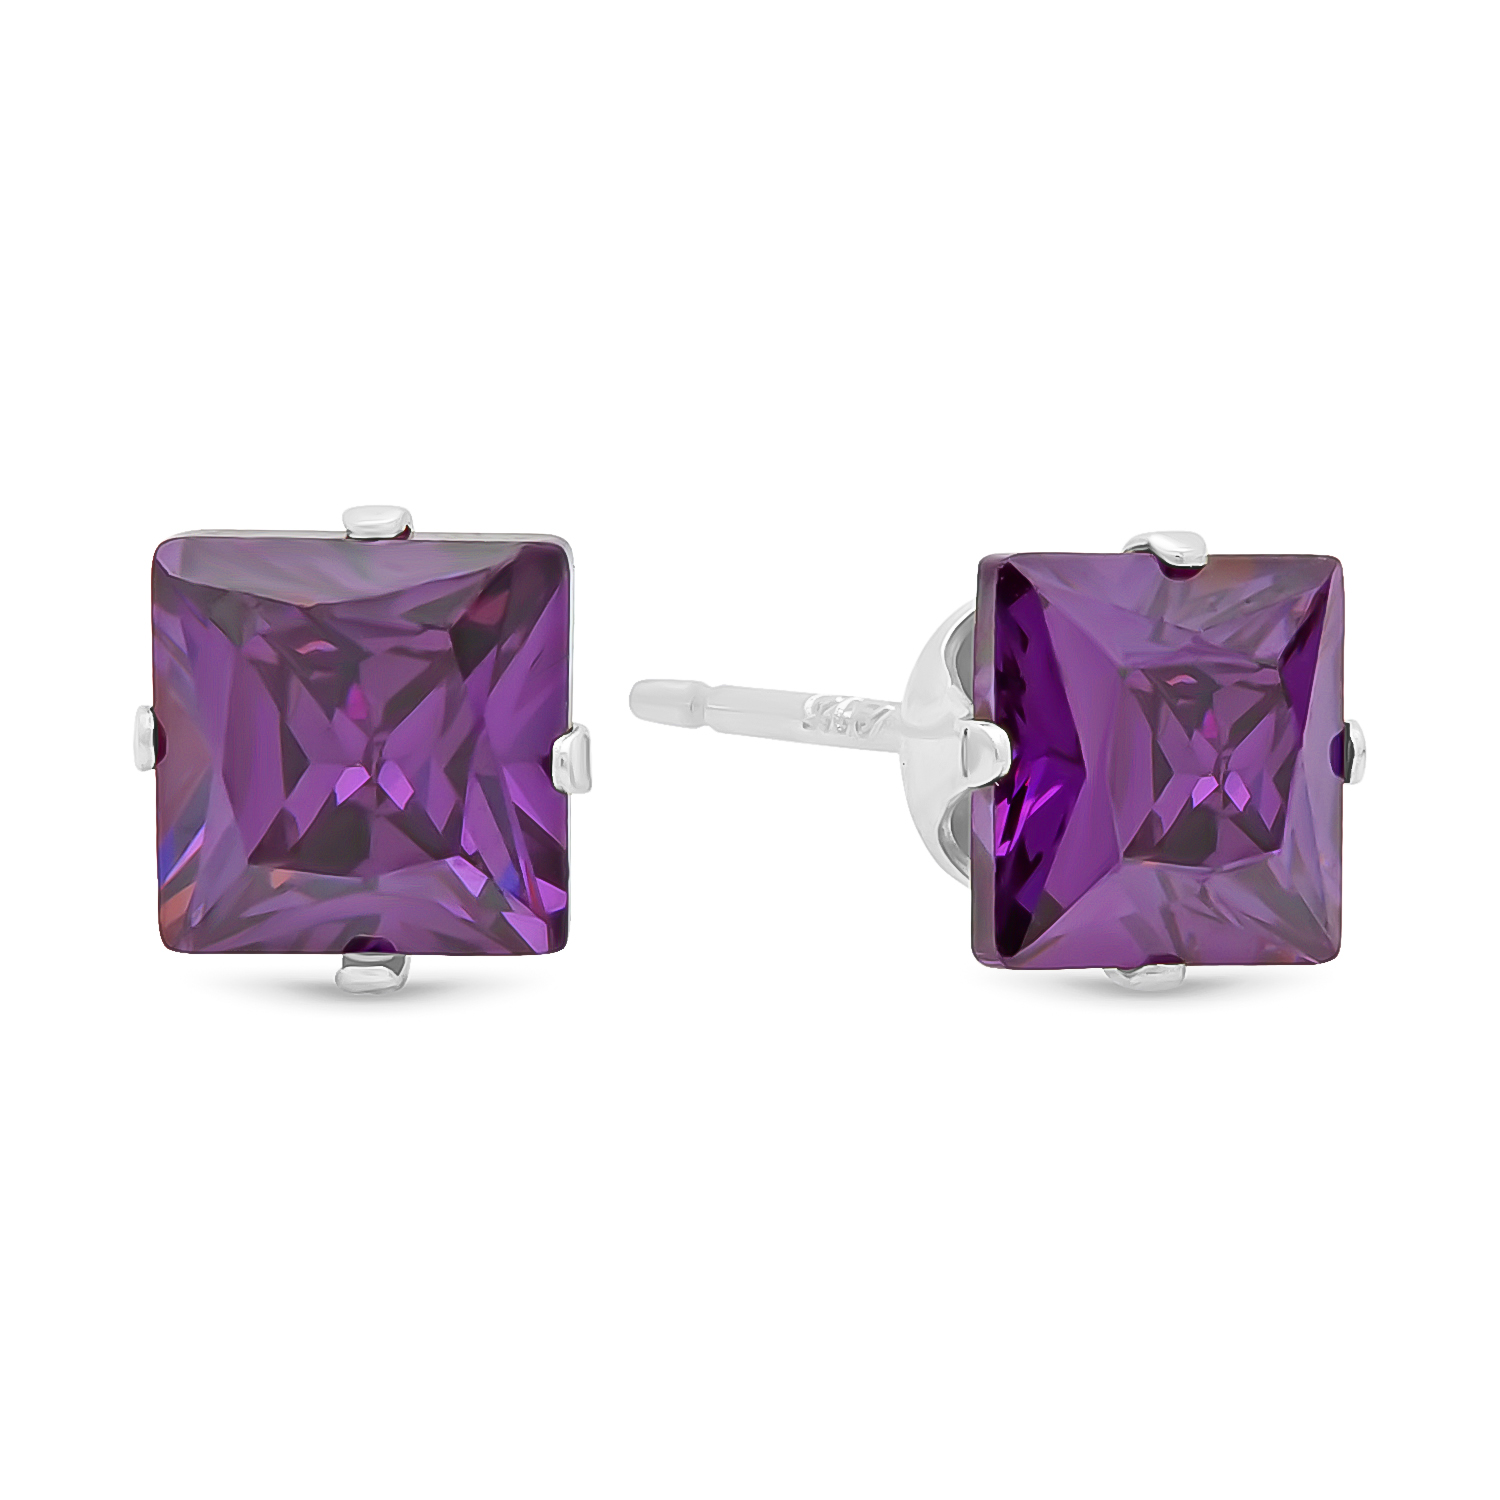 Square Cut Simulated Purple Amethyst CZ Sterling Silver Nickel-Free Stud Earrings + Bonus Polishing Cloth